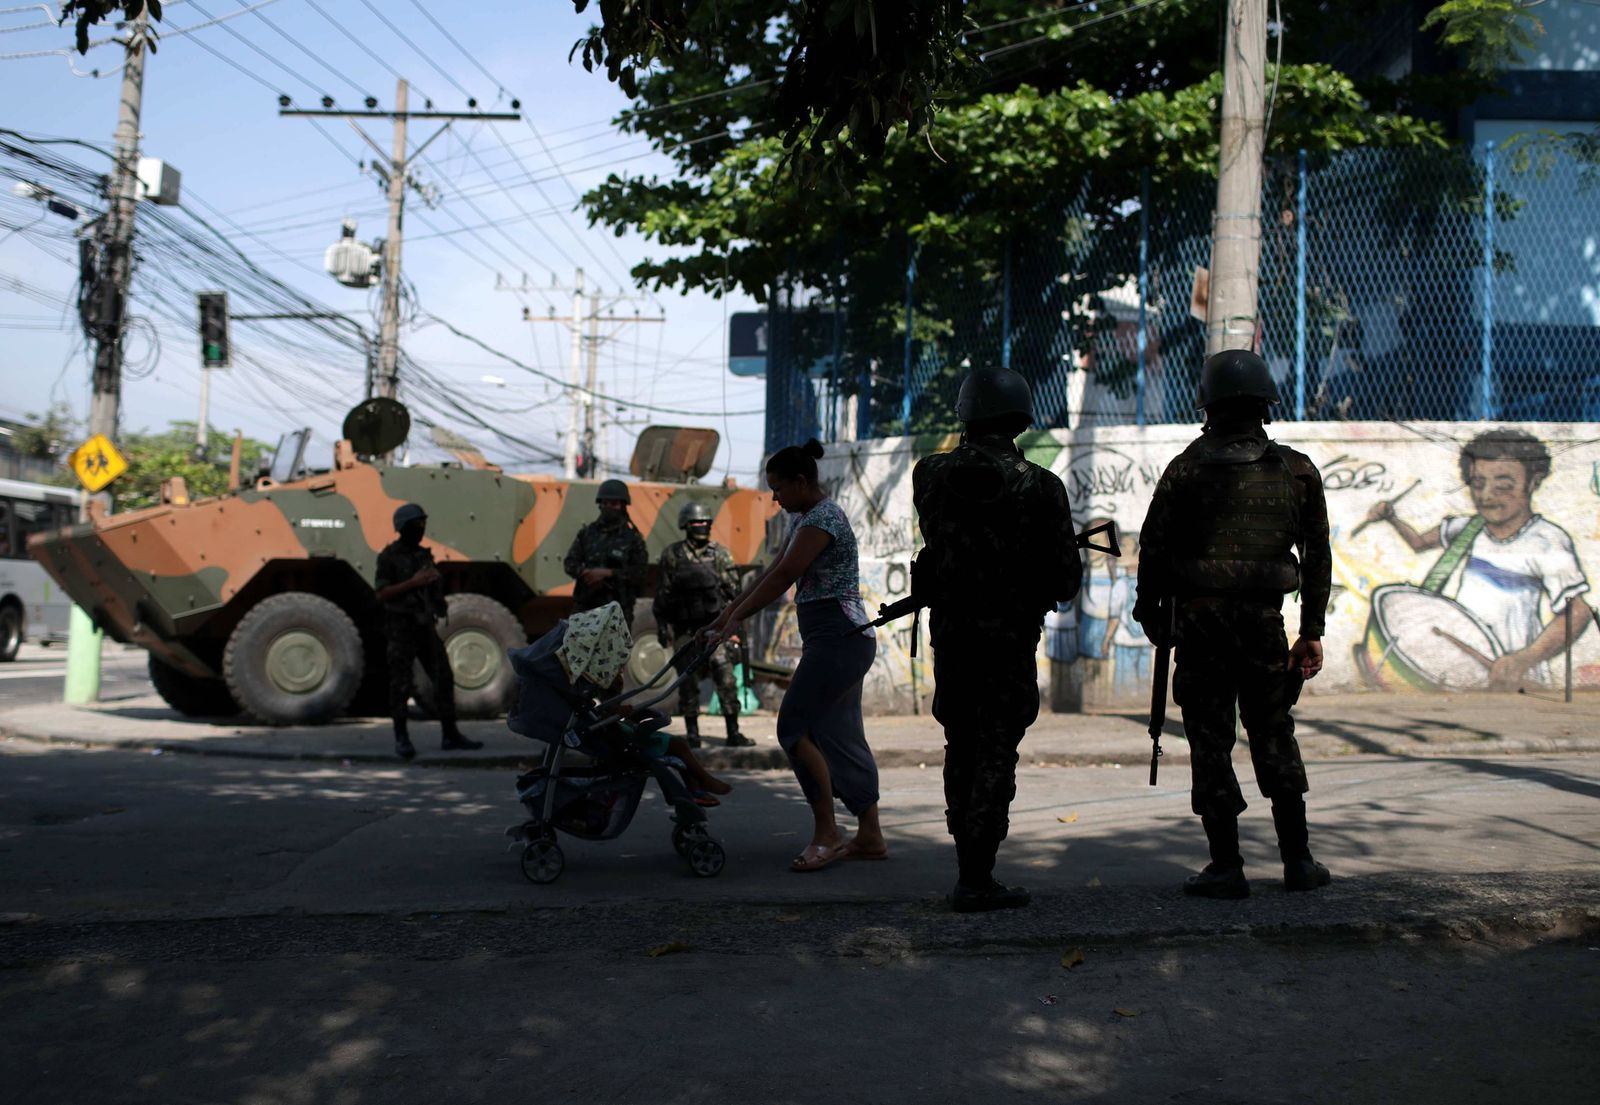 Soldiers of the Brazilian Army carry out an operation in the Complexo do Alemao in the city of Rio d